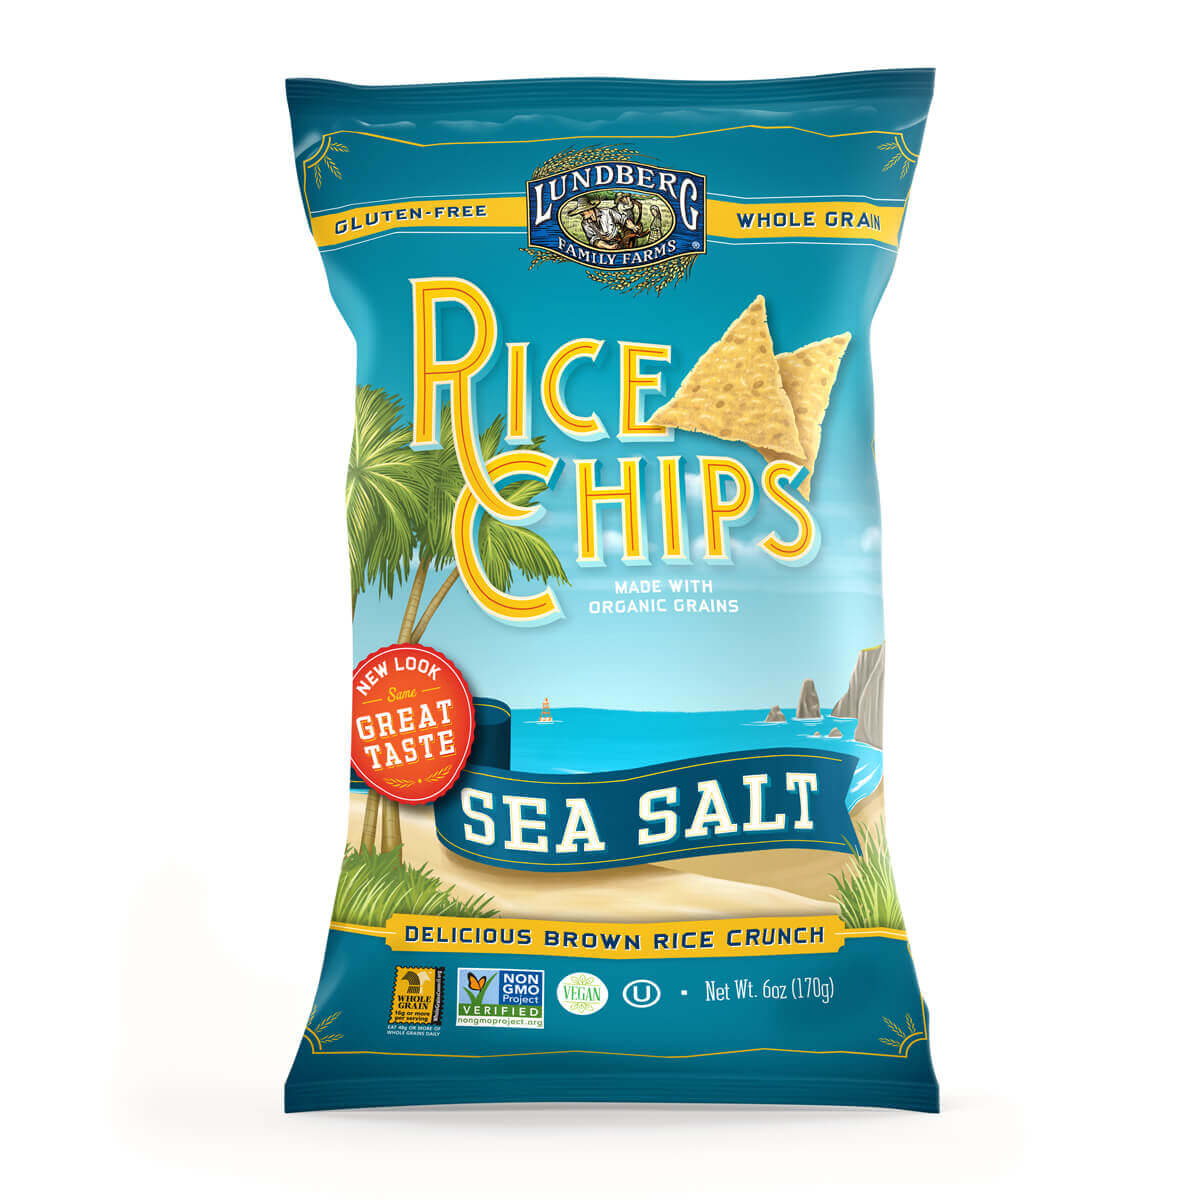 Rice Chip Packaging Hero Image